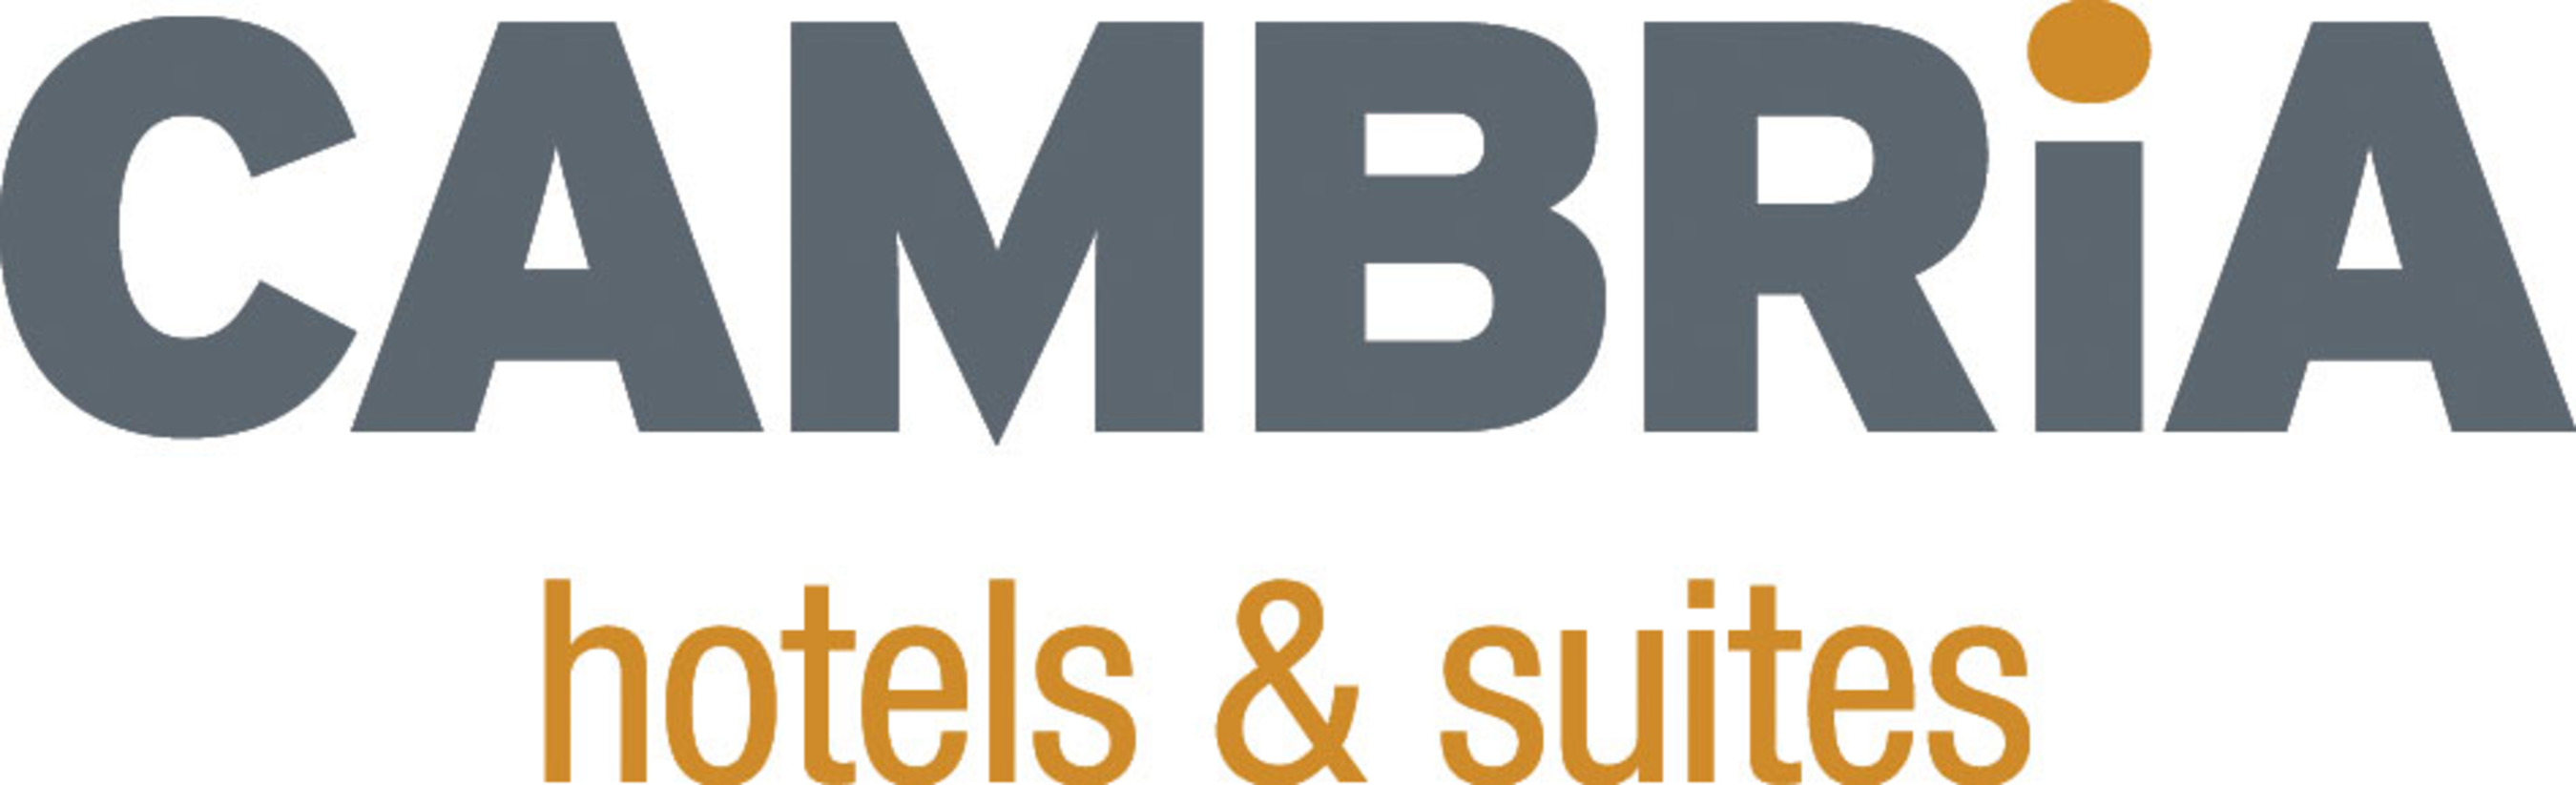 Cambria Hotels Suites New Logo Prnewsfoto Choice International